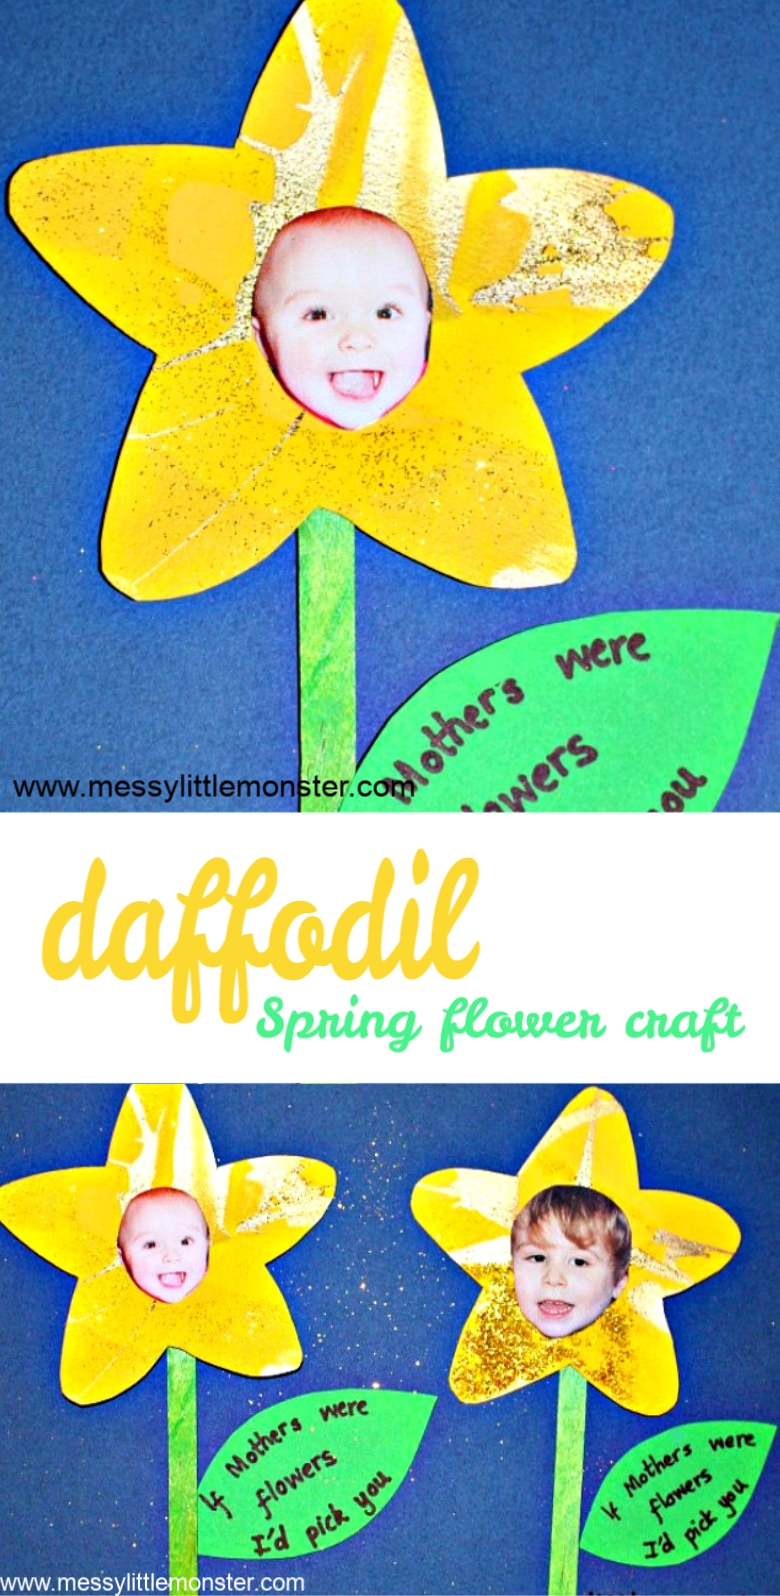 Spring Flower craft for kids. This daffodil craft makes an easy Mother's day craft, just add the words 'If mothers were flowers I'd pick you'!